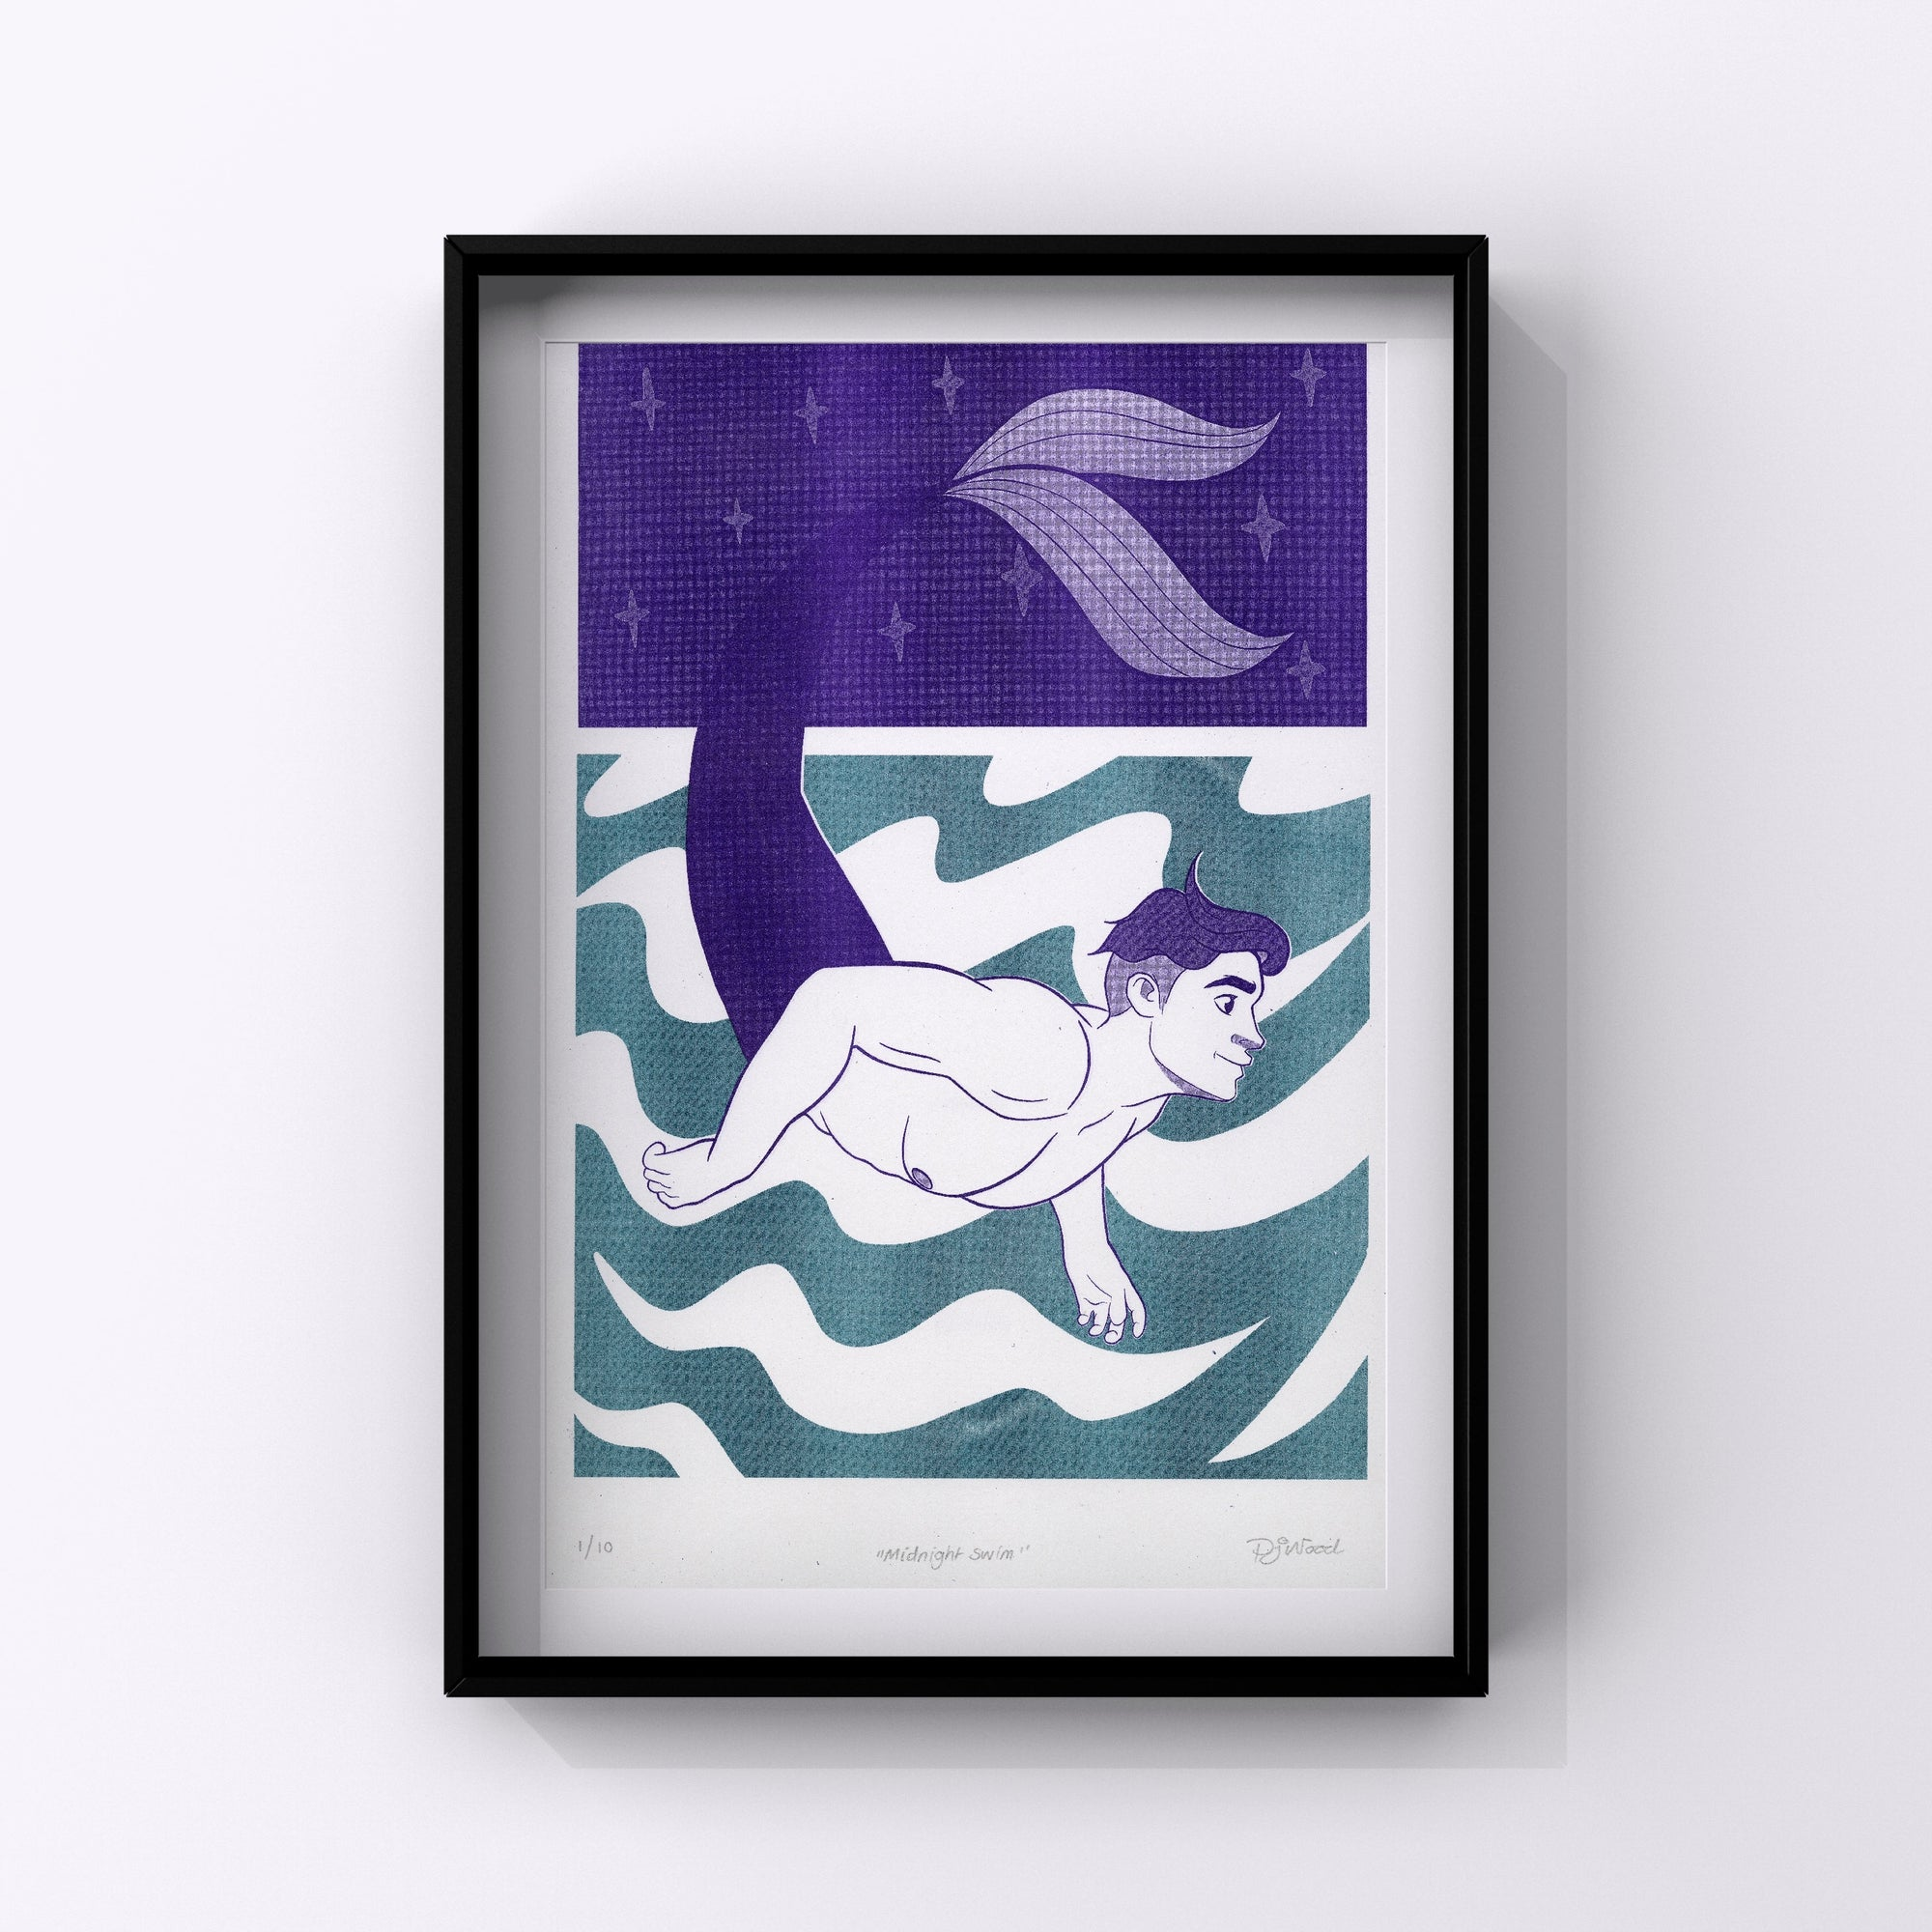 Midnight Swim, Ltd. Edition Risograph Print by Pete Jordi Wood is available from Bodega Bijou Illustration Gallery, Cornwall